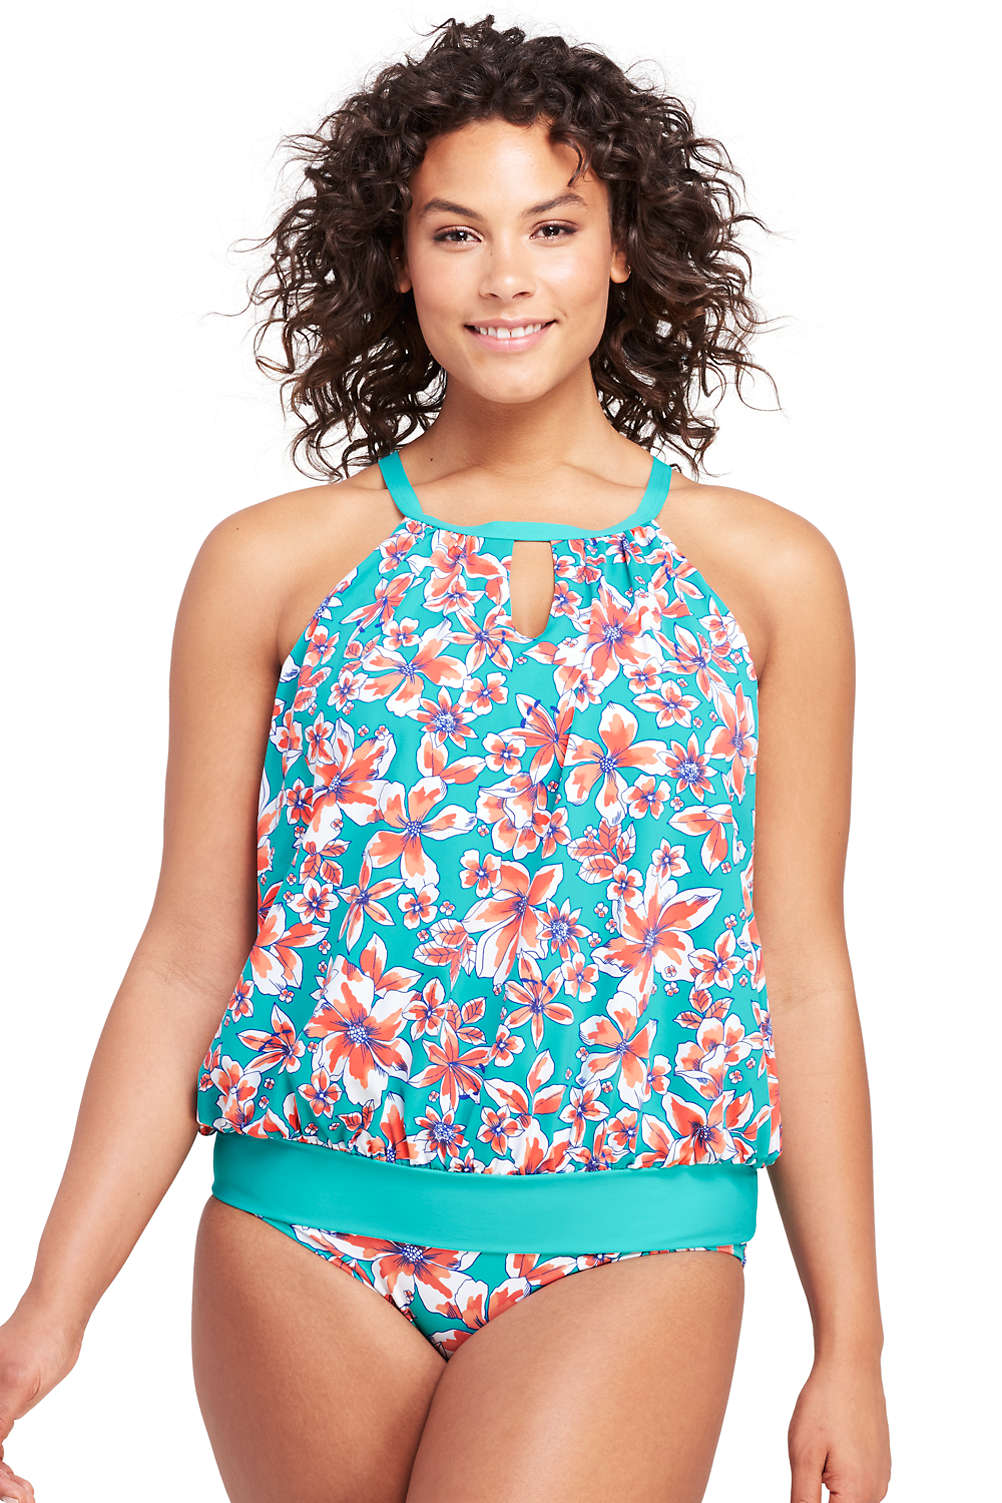 628573b8928 Women s Plus Size High-neck Blouson Tankini Top. Item  5005256Q1. View  Fullscreen